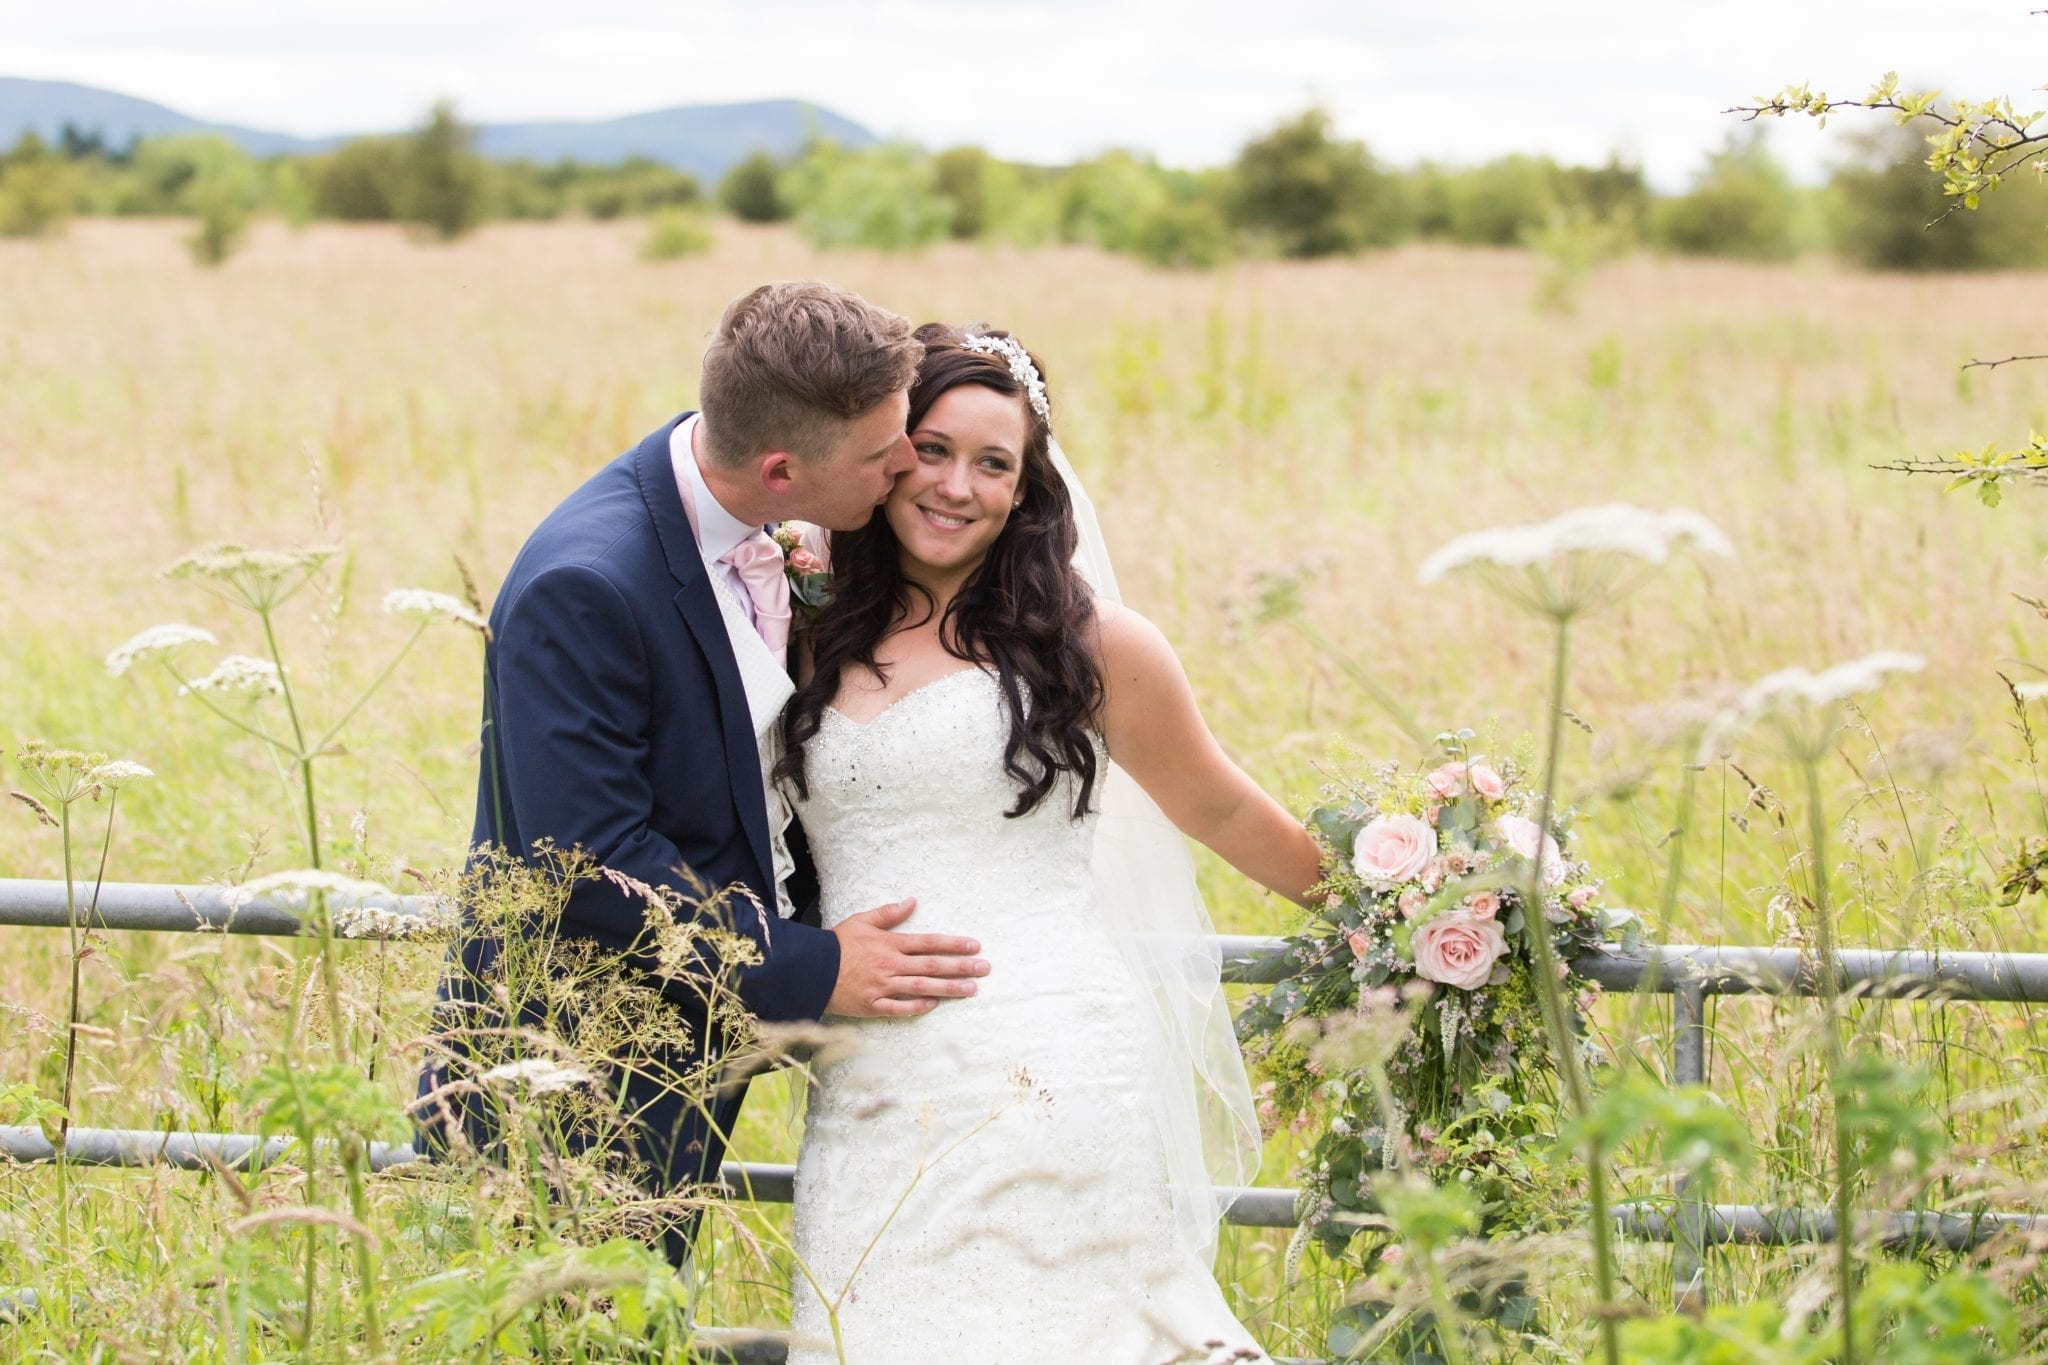 Real Wedding: Abigail and Matthew's Outdoor Inspired Wedding at Whinstone View